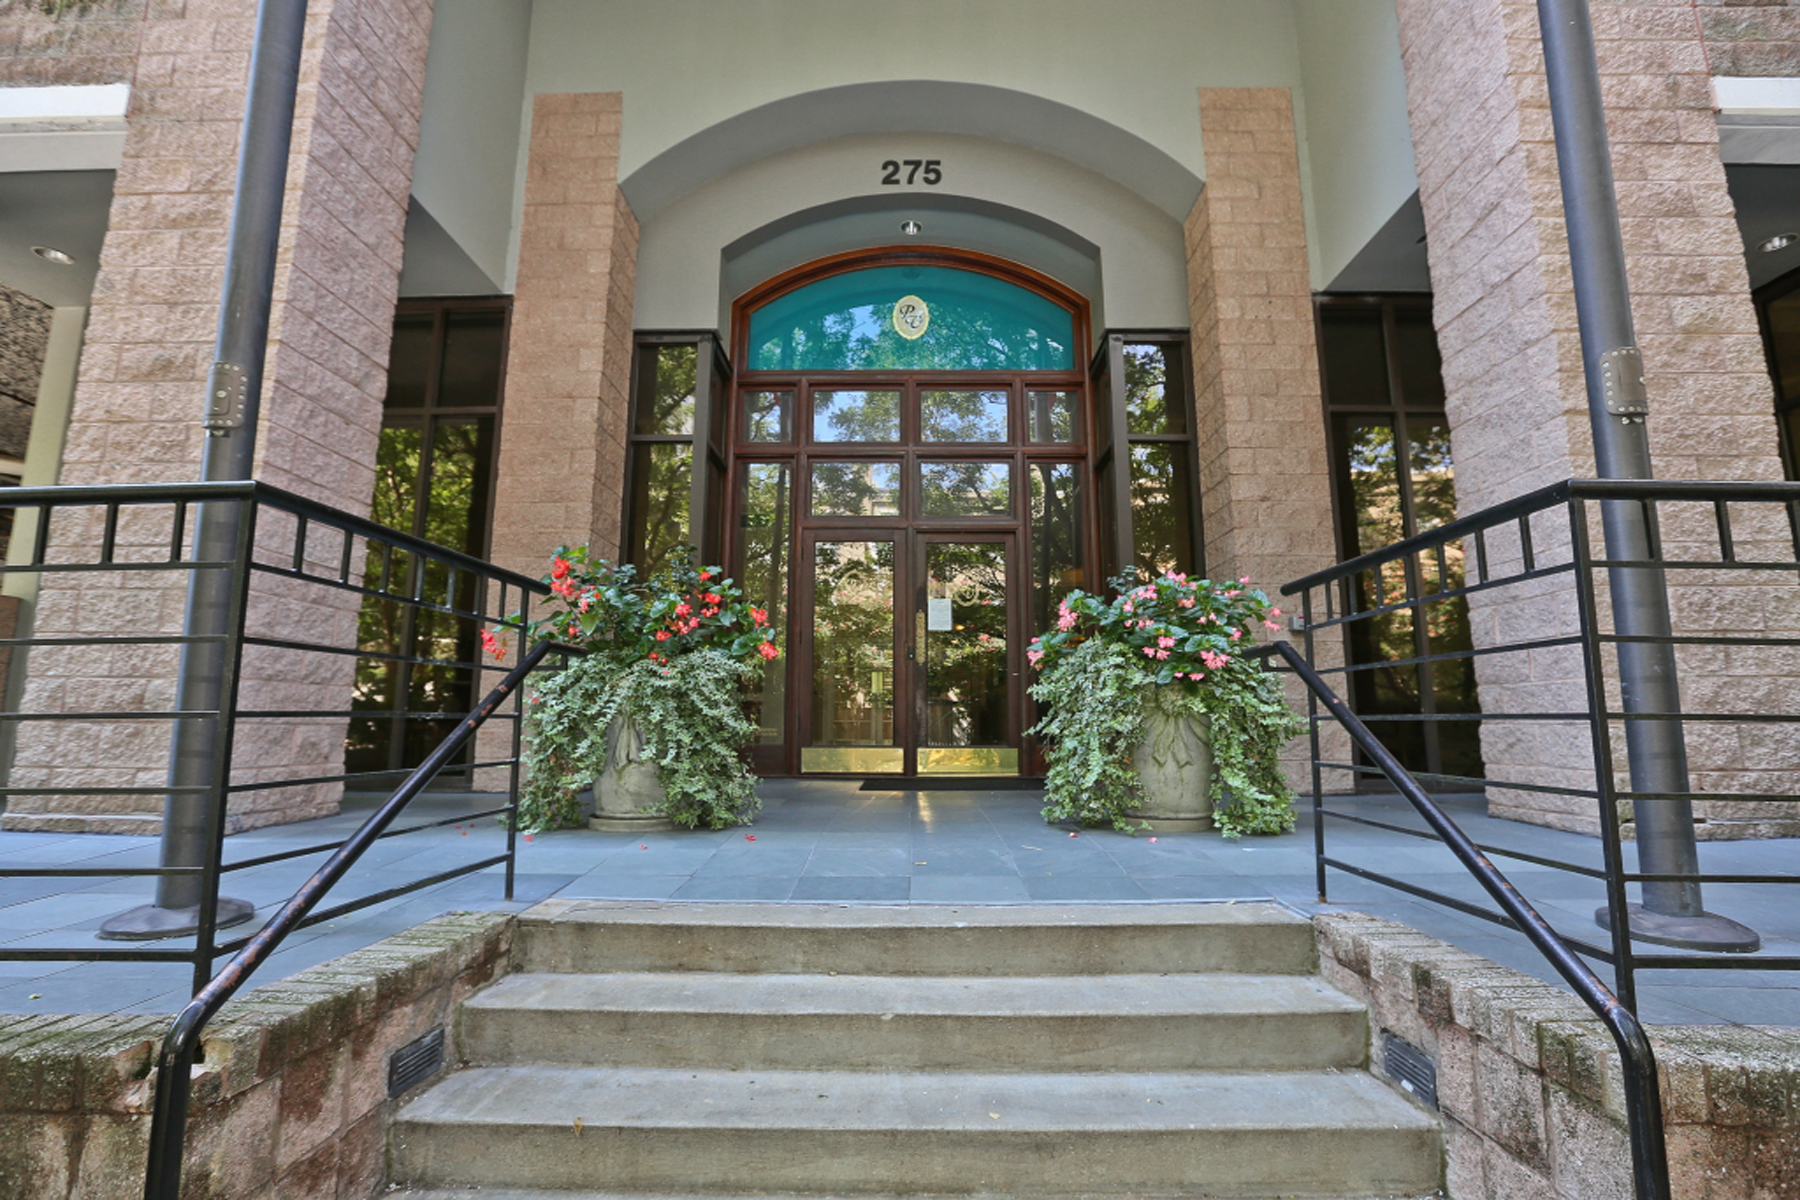 Кондоминиум для того Продажа на Beautiful Condo Near Piedmont Park 275 13th Street NE Unit 610 Atlanta, Джорджия 30309 Соединенные Штаты